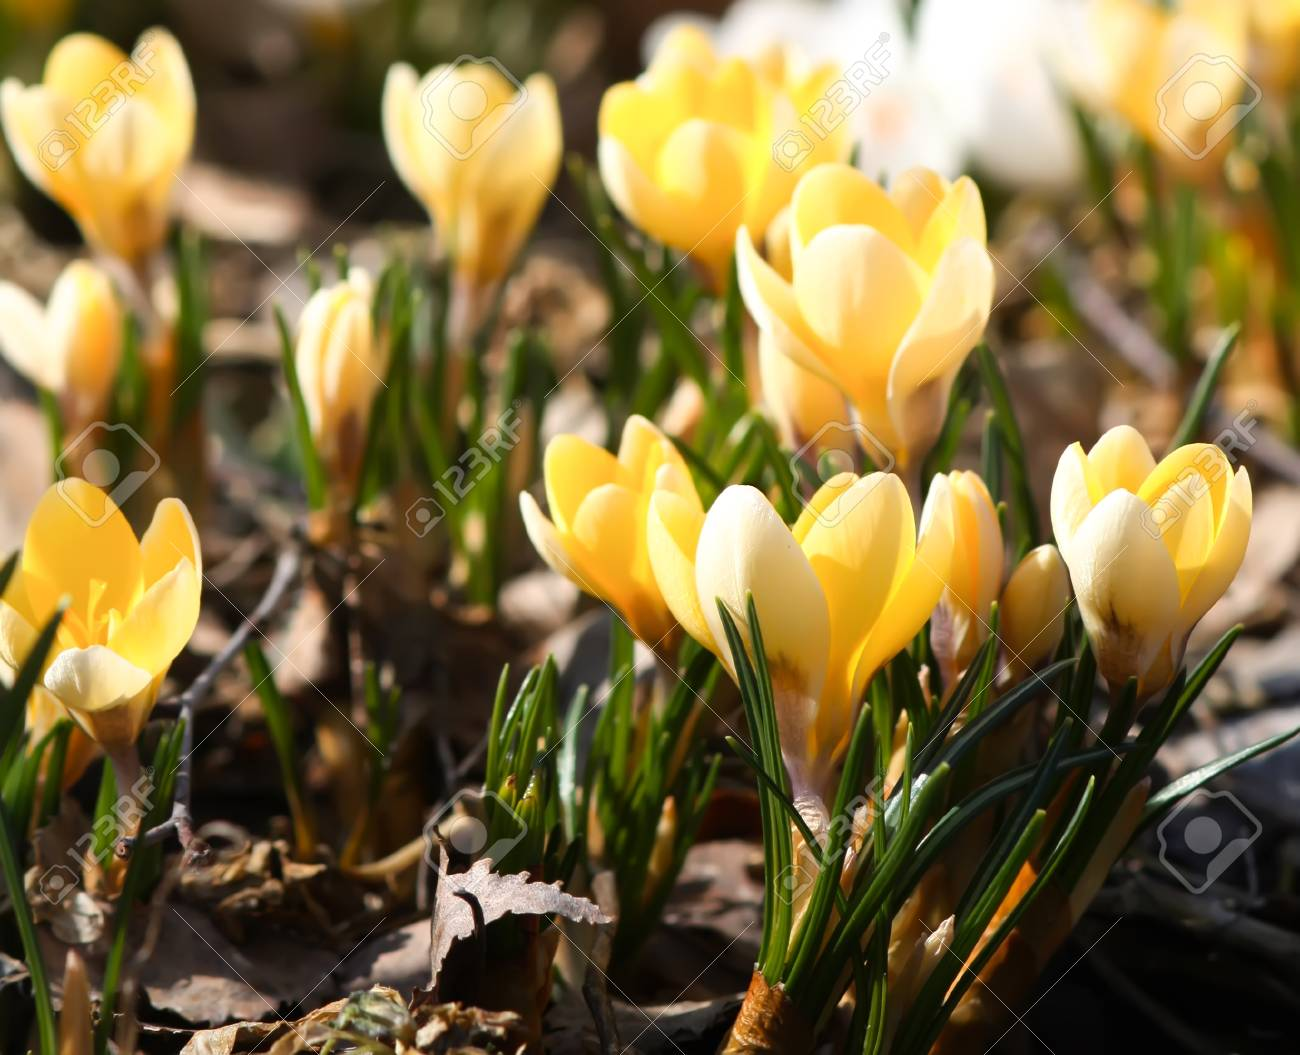 Spring Beautiful Yellow Crocus Flowers Blooming In A Park In Stock